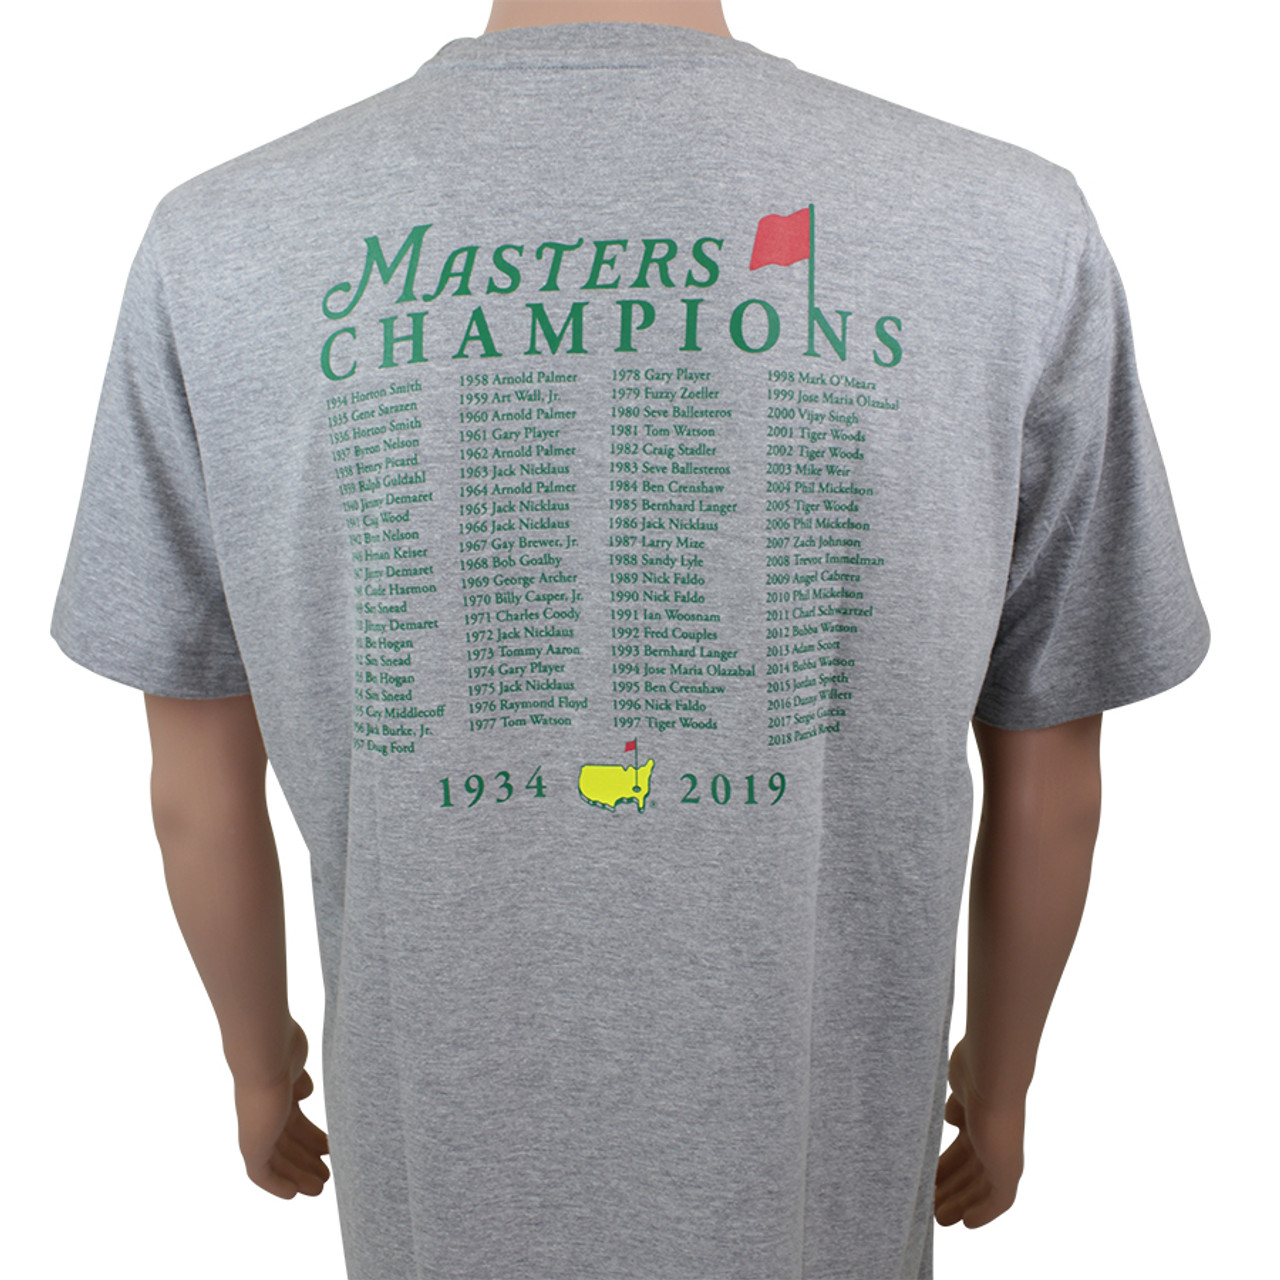 a4e694f77c0b 2019 Masters Champions T Shirt in White - Masters Windshirts ...